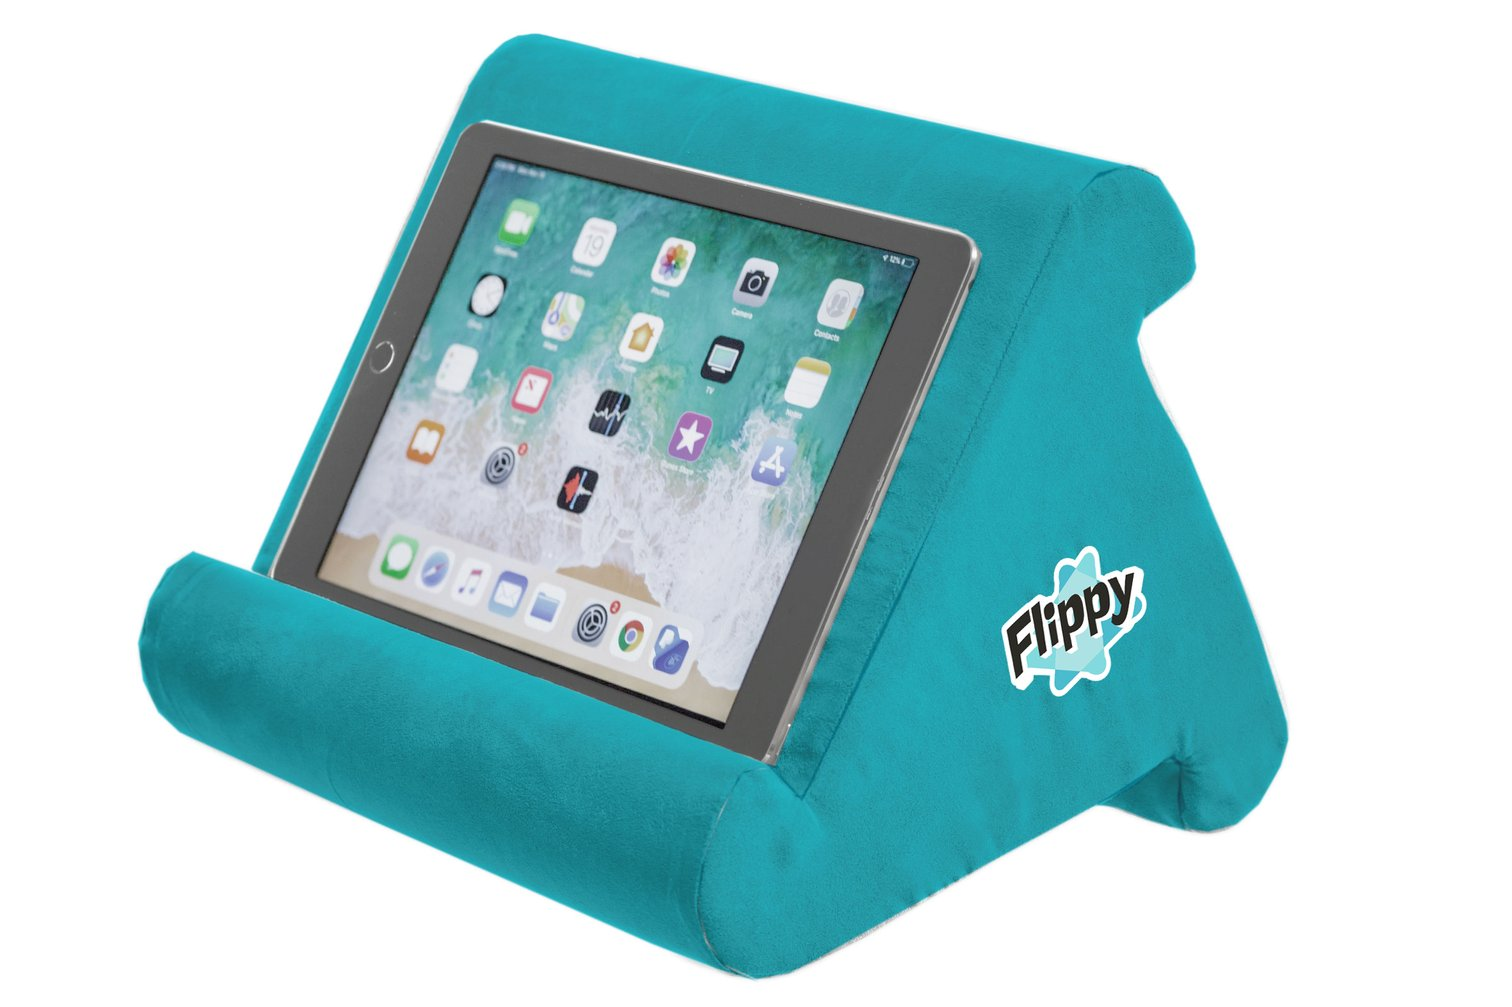 the original flippy multi angle soft pillow lap stand for ipads tablets ereaders smartphones books magazines